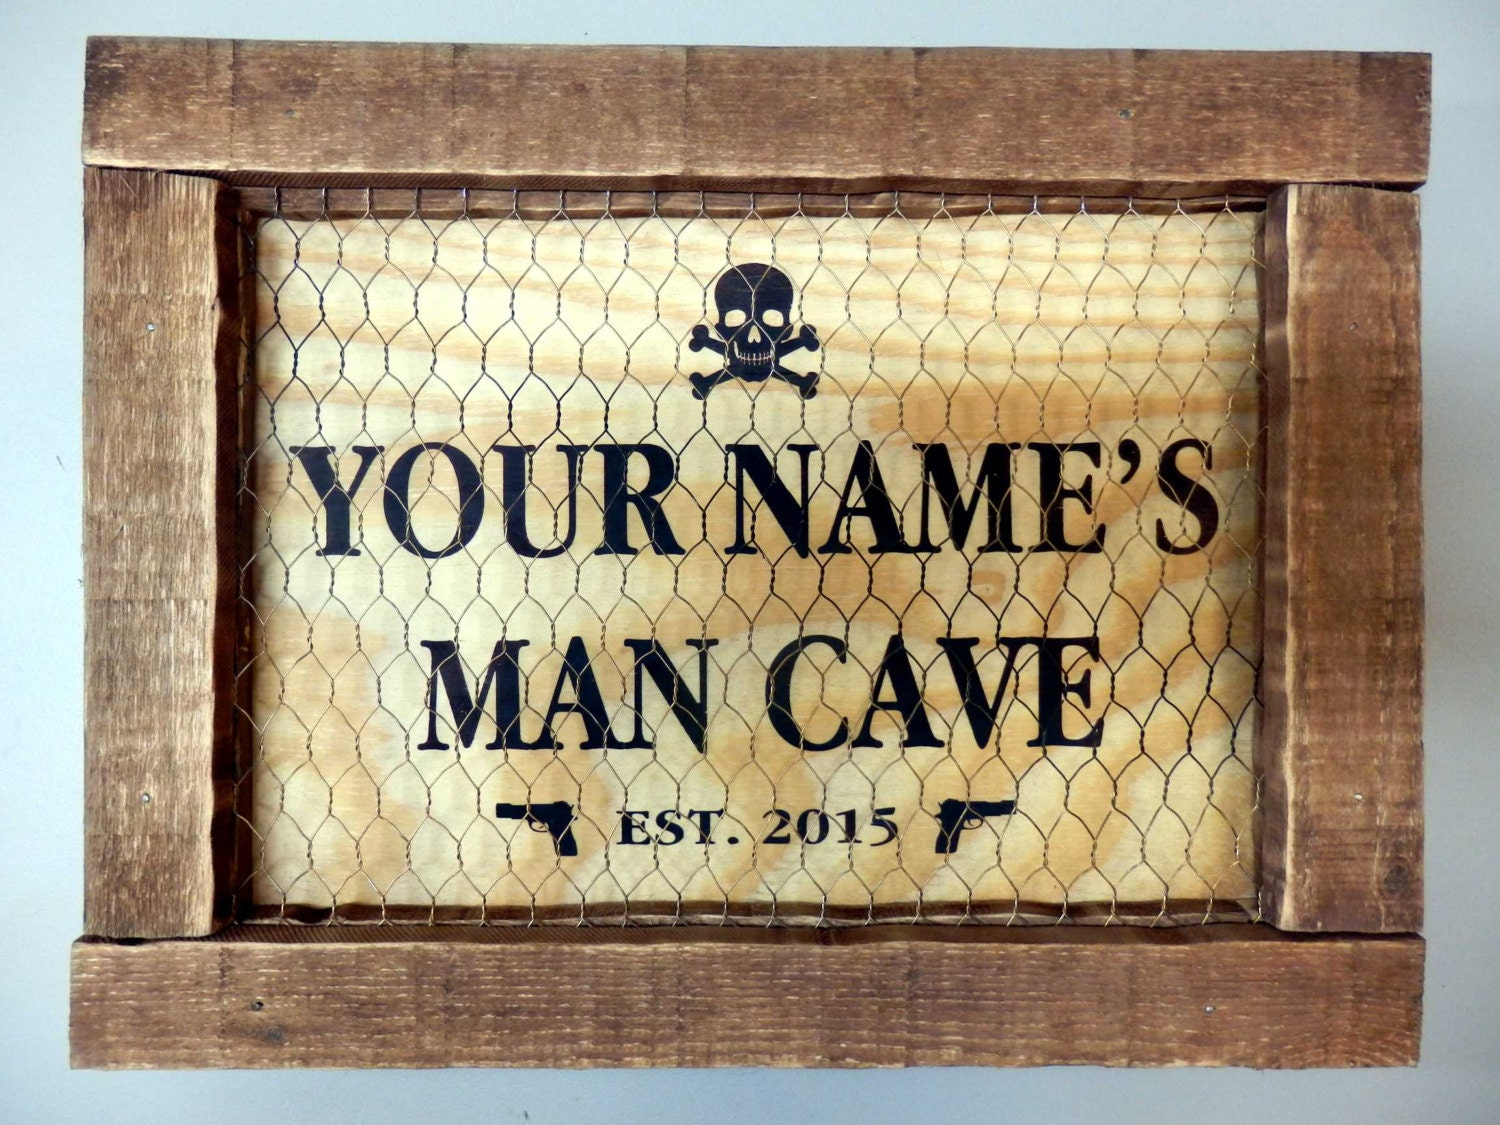 Man Cave Bar Signs : Personalized bar and pub signage gift man cave sign home